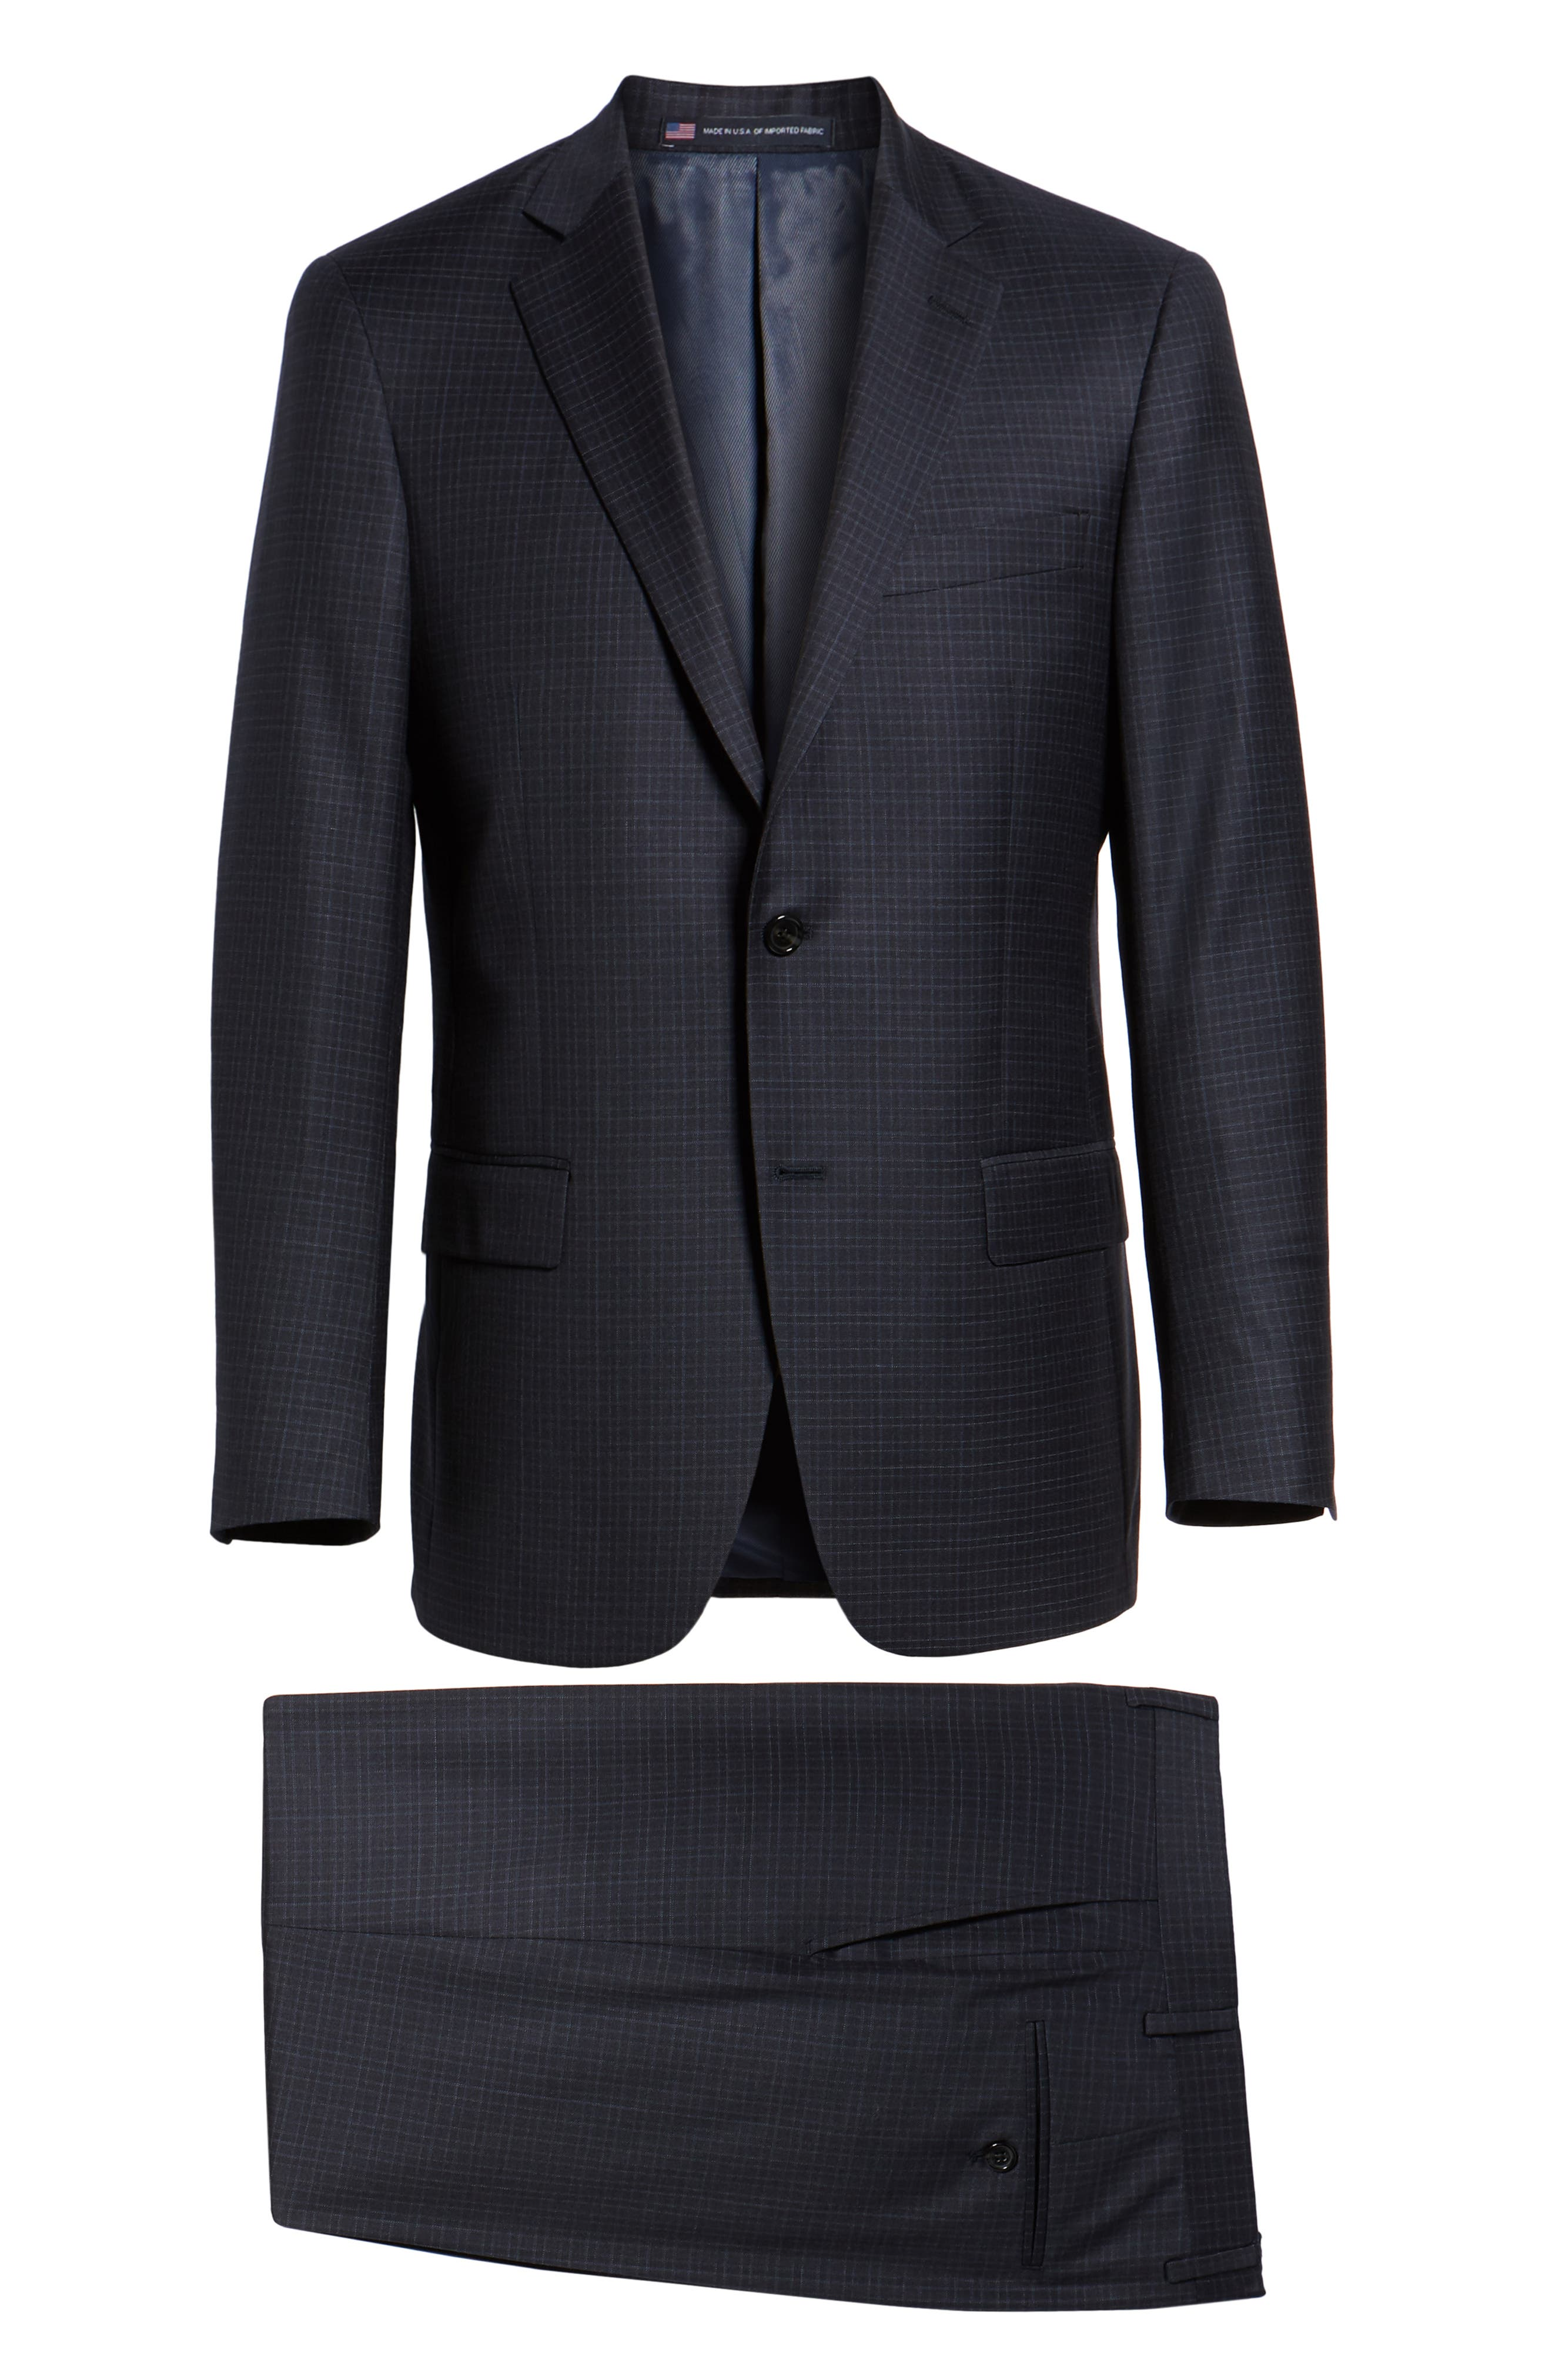 New York Classic Fit Check Wool Suit,                             Alternate thumbnail 8, color,                             NAVY